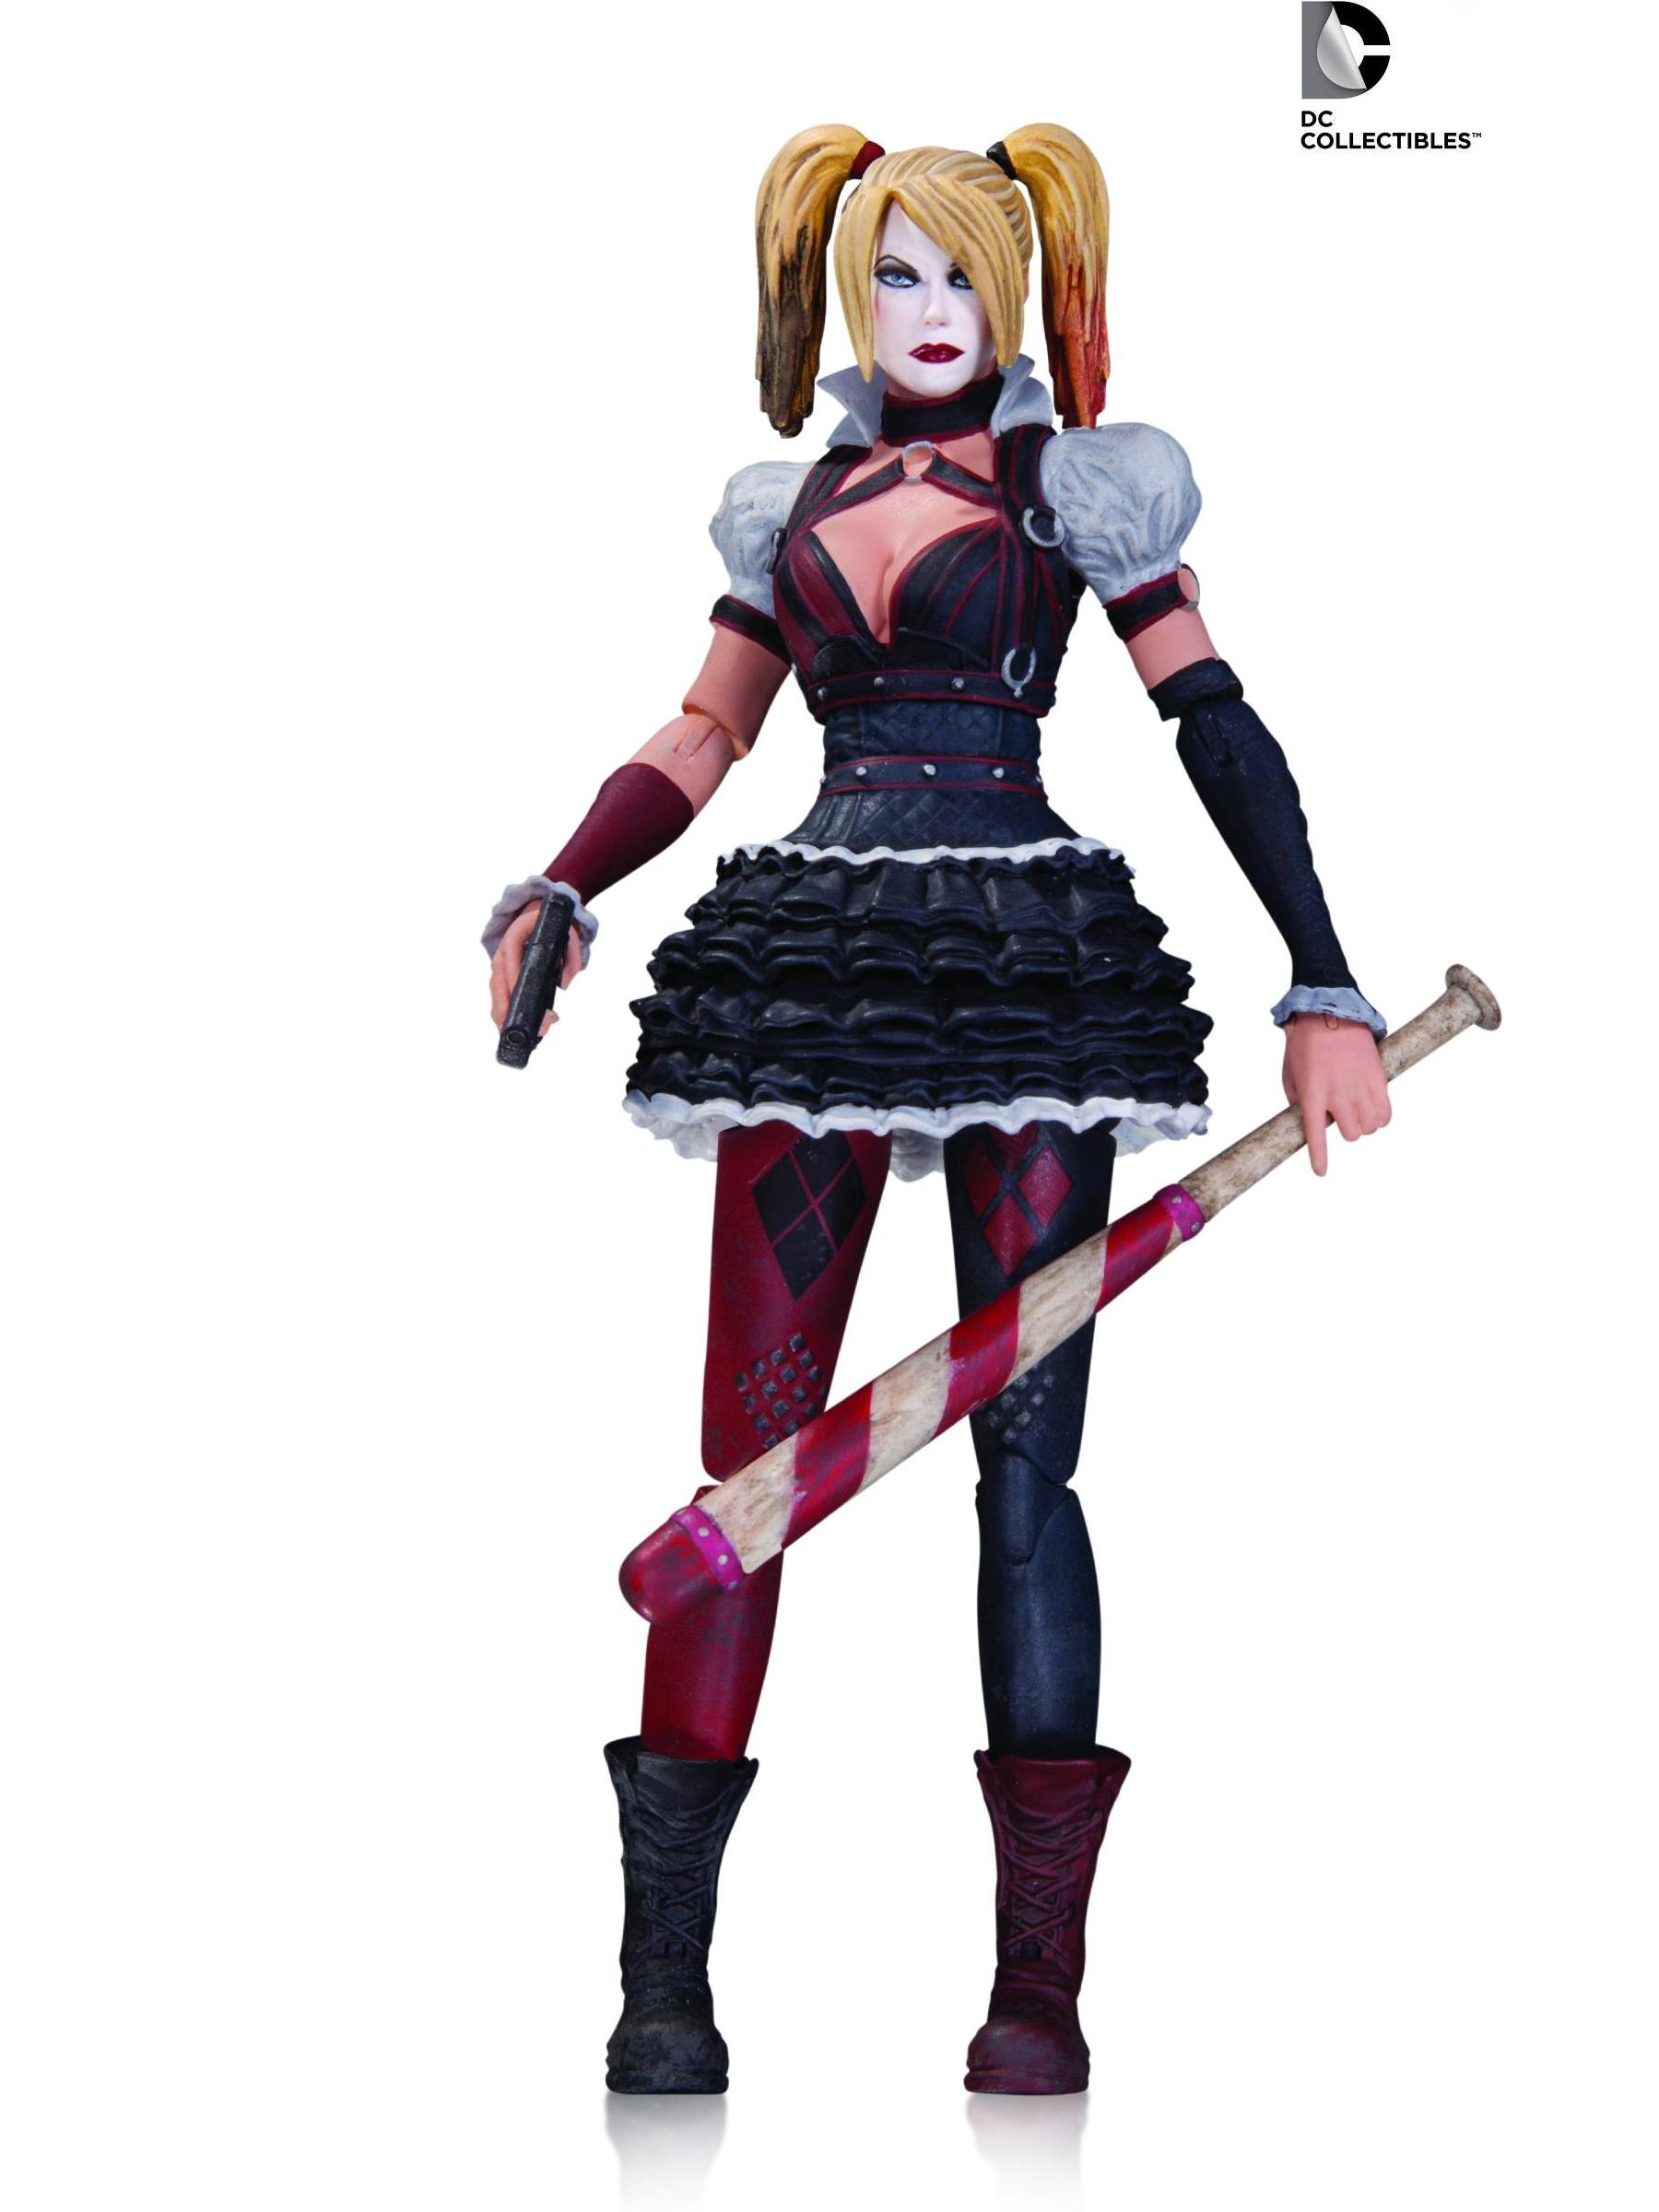 DC Comics Batman Arkham Knight Harley Quinn Figure